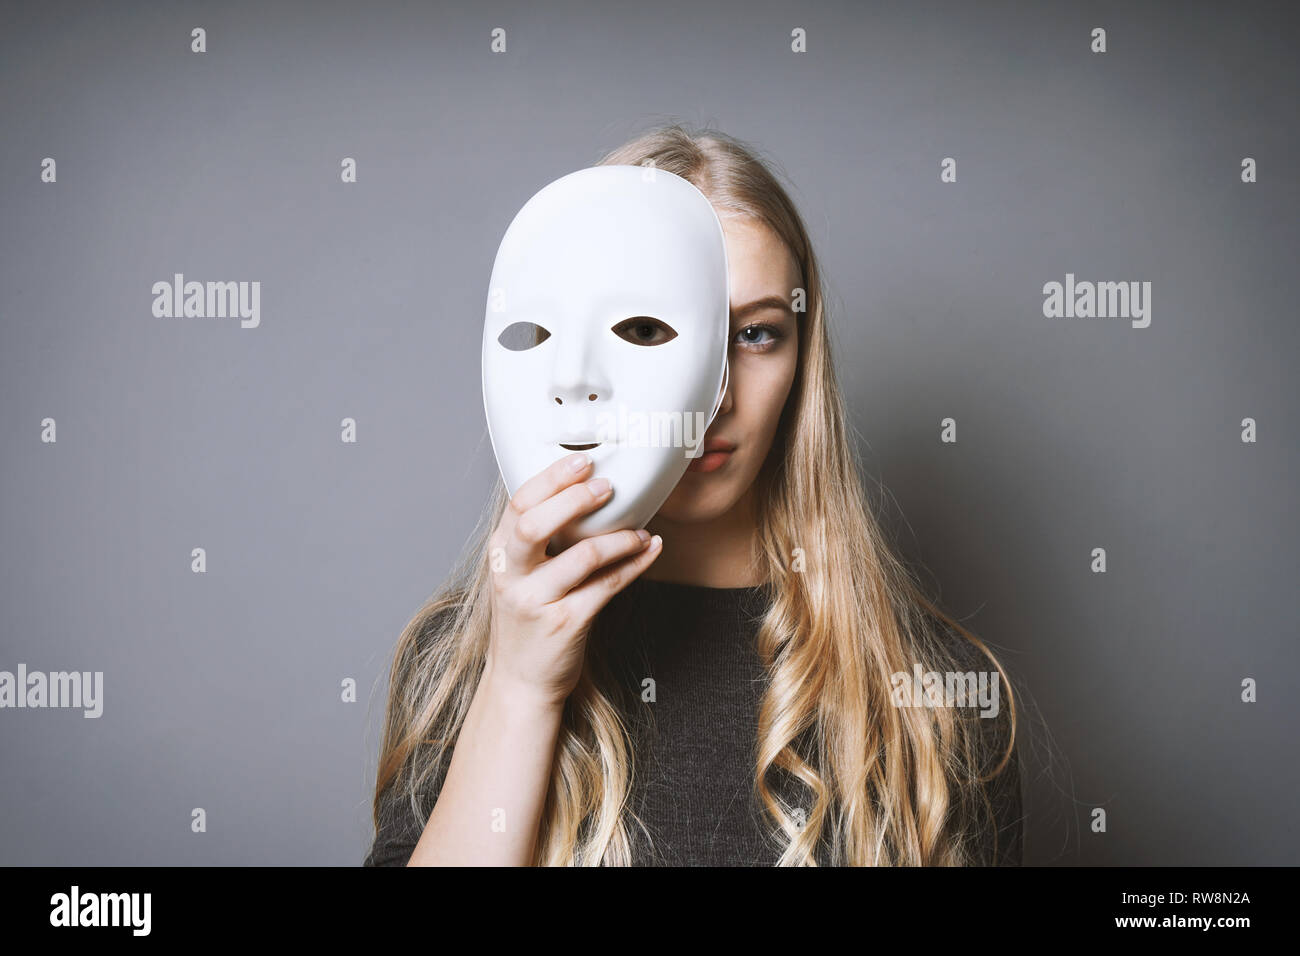 teen girl hiding her face behind mask - identity or personality concept Stock Photo